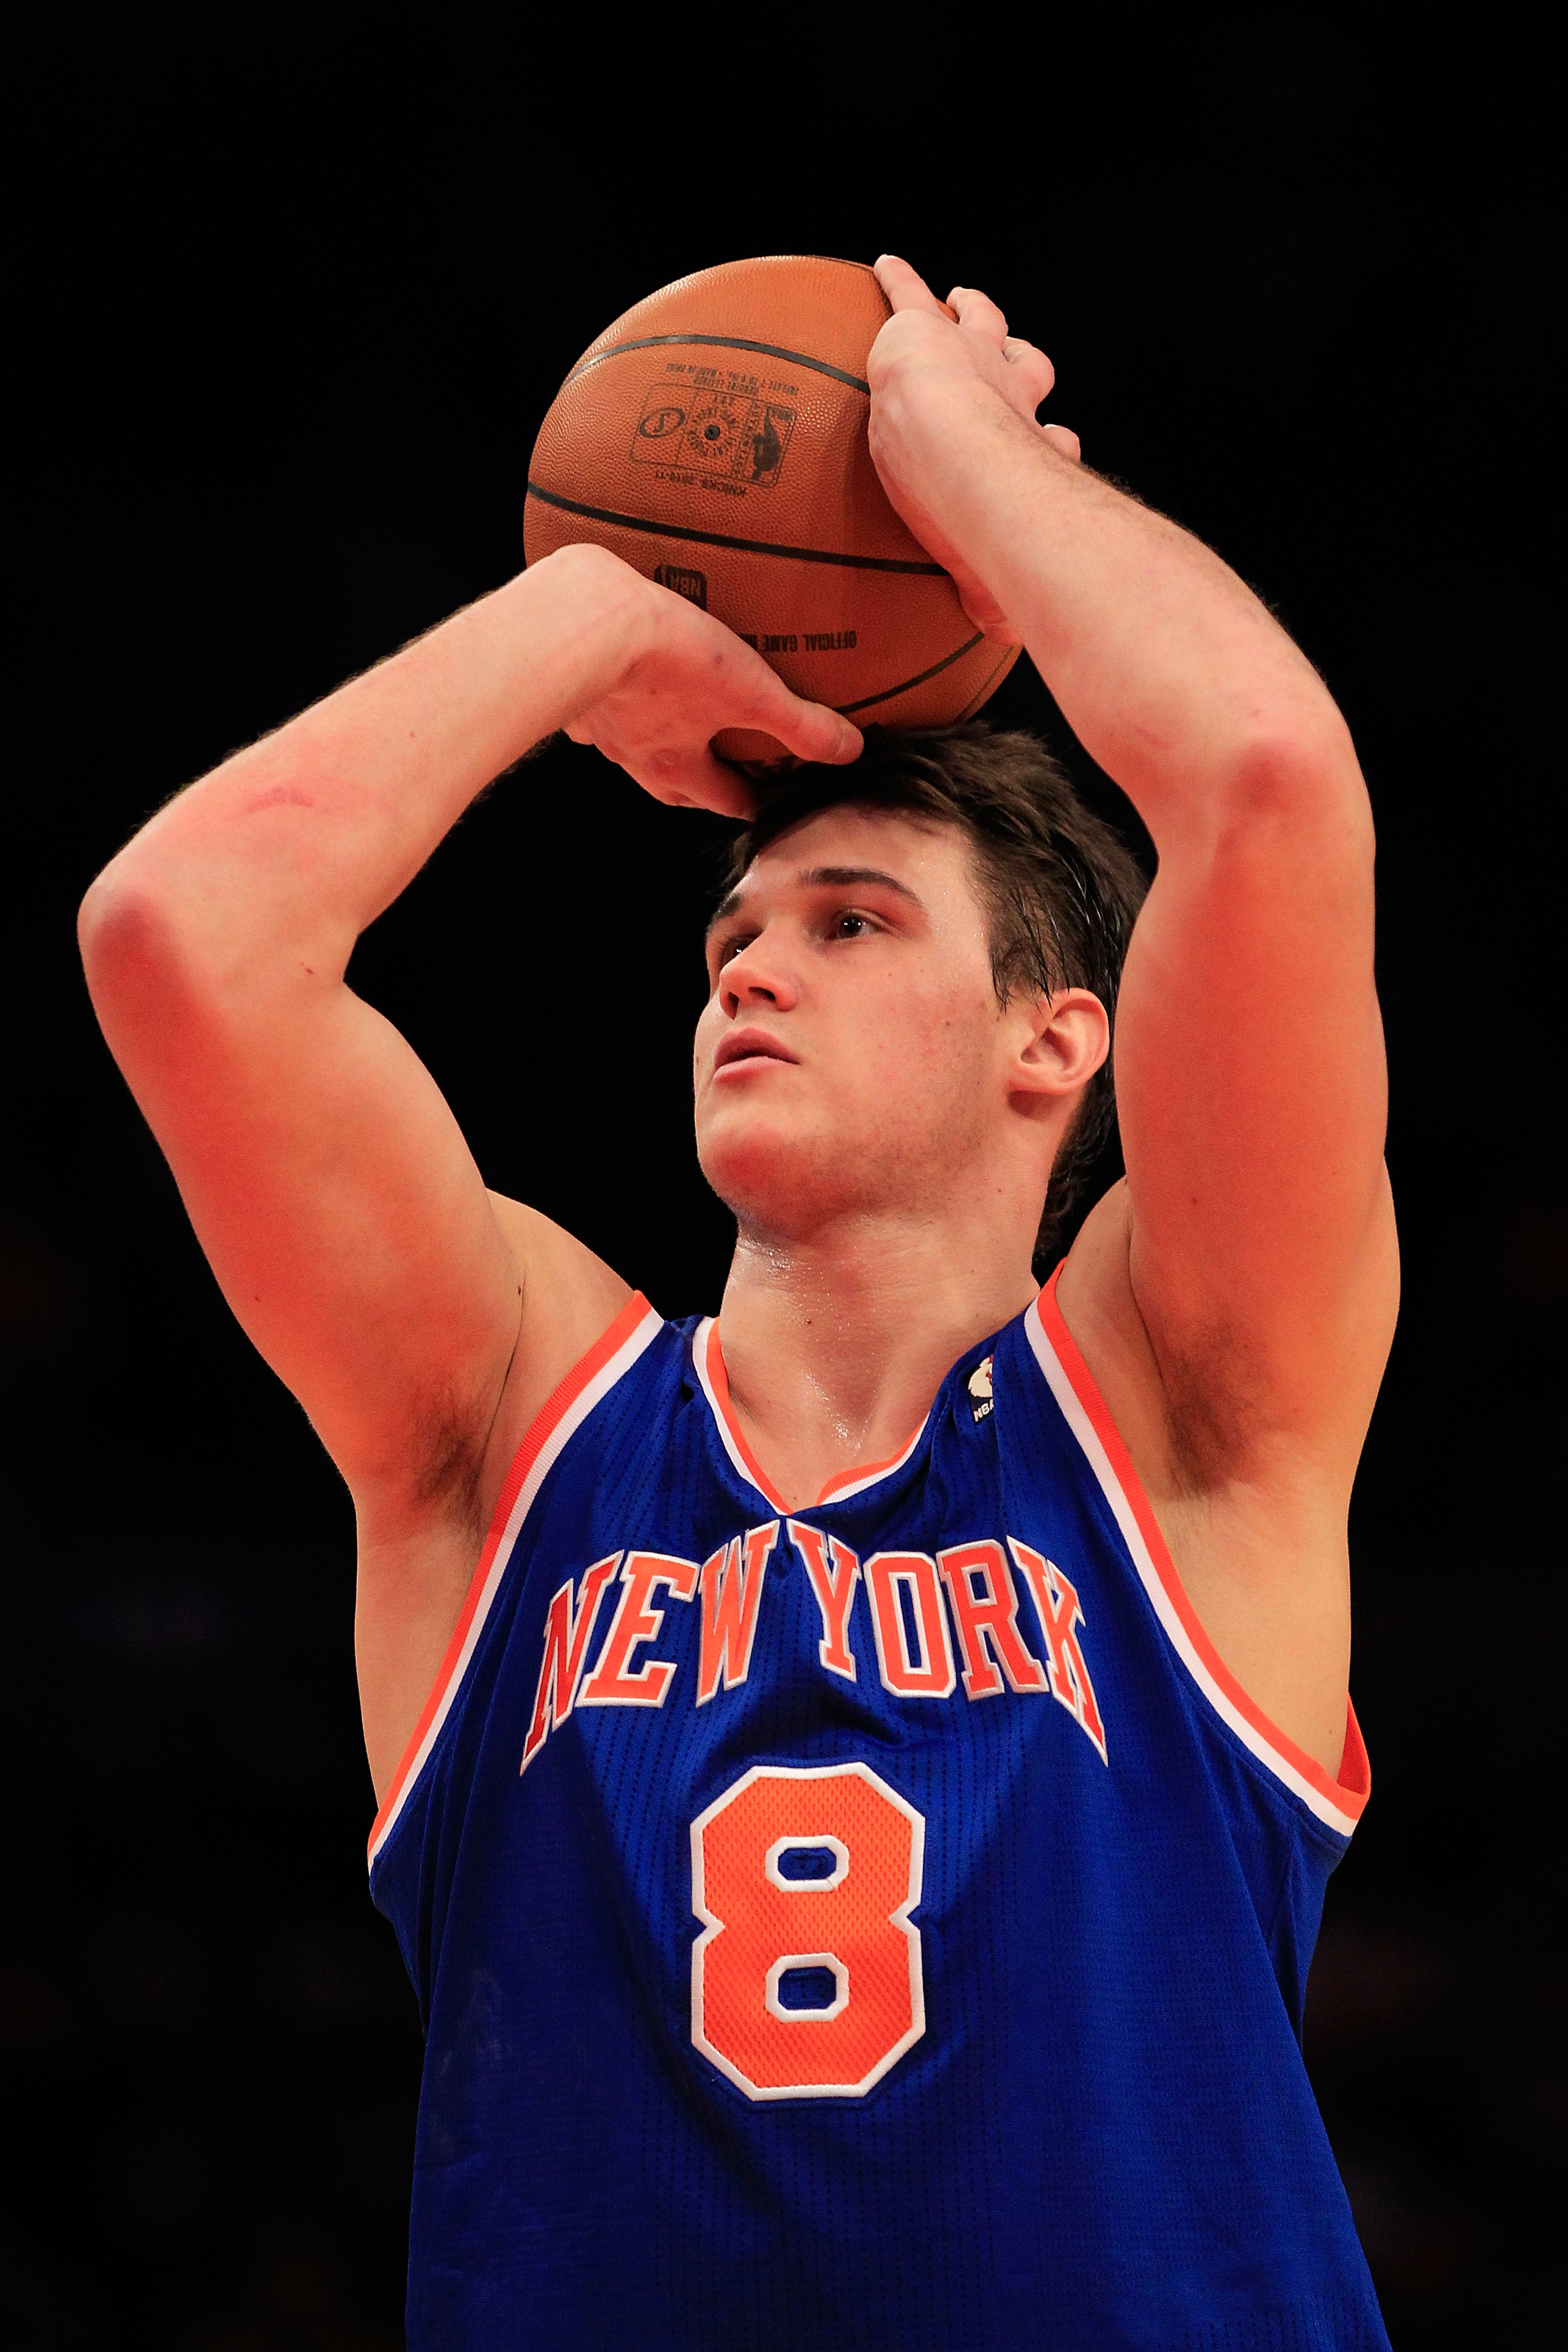 NEW YORK, NY - FEBRUARY 11: Danilo Gallinari #8 of the New York Knicks shoots a free throw against the Los Angeles Lakers at Madison Square Garden on February 11, 2011 in New York City. NOTE TO USER: User expressly acknowledges and agrees that, by downloa